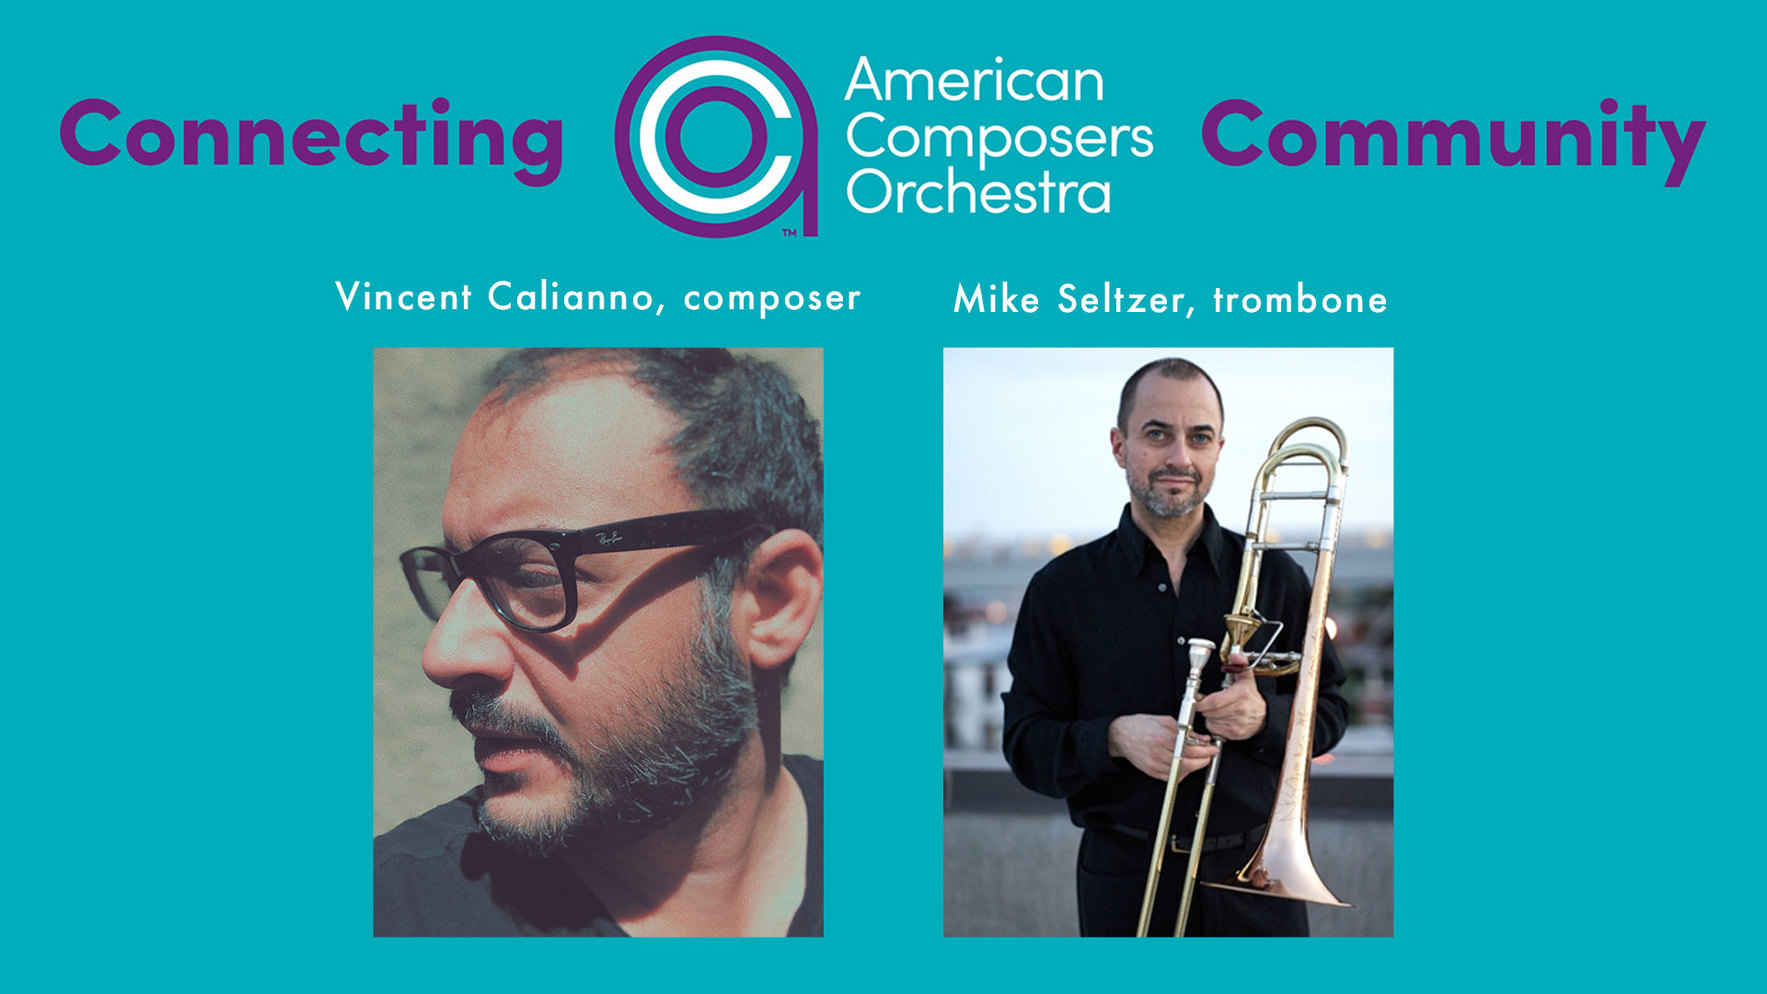 Connecting ACO Community Volume III - Vincent Calianno's new work for trombonist Mike Seltzer  image